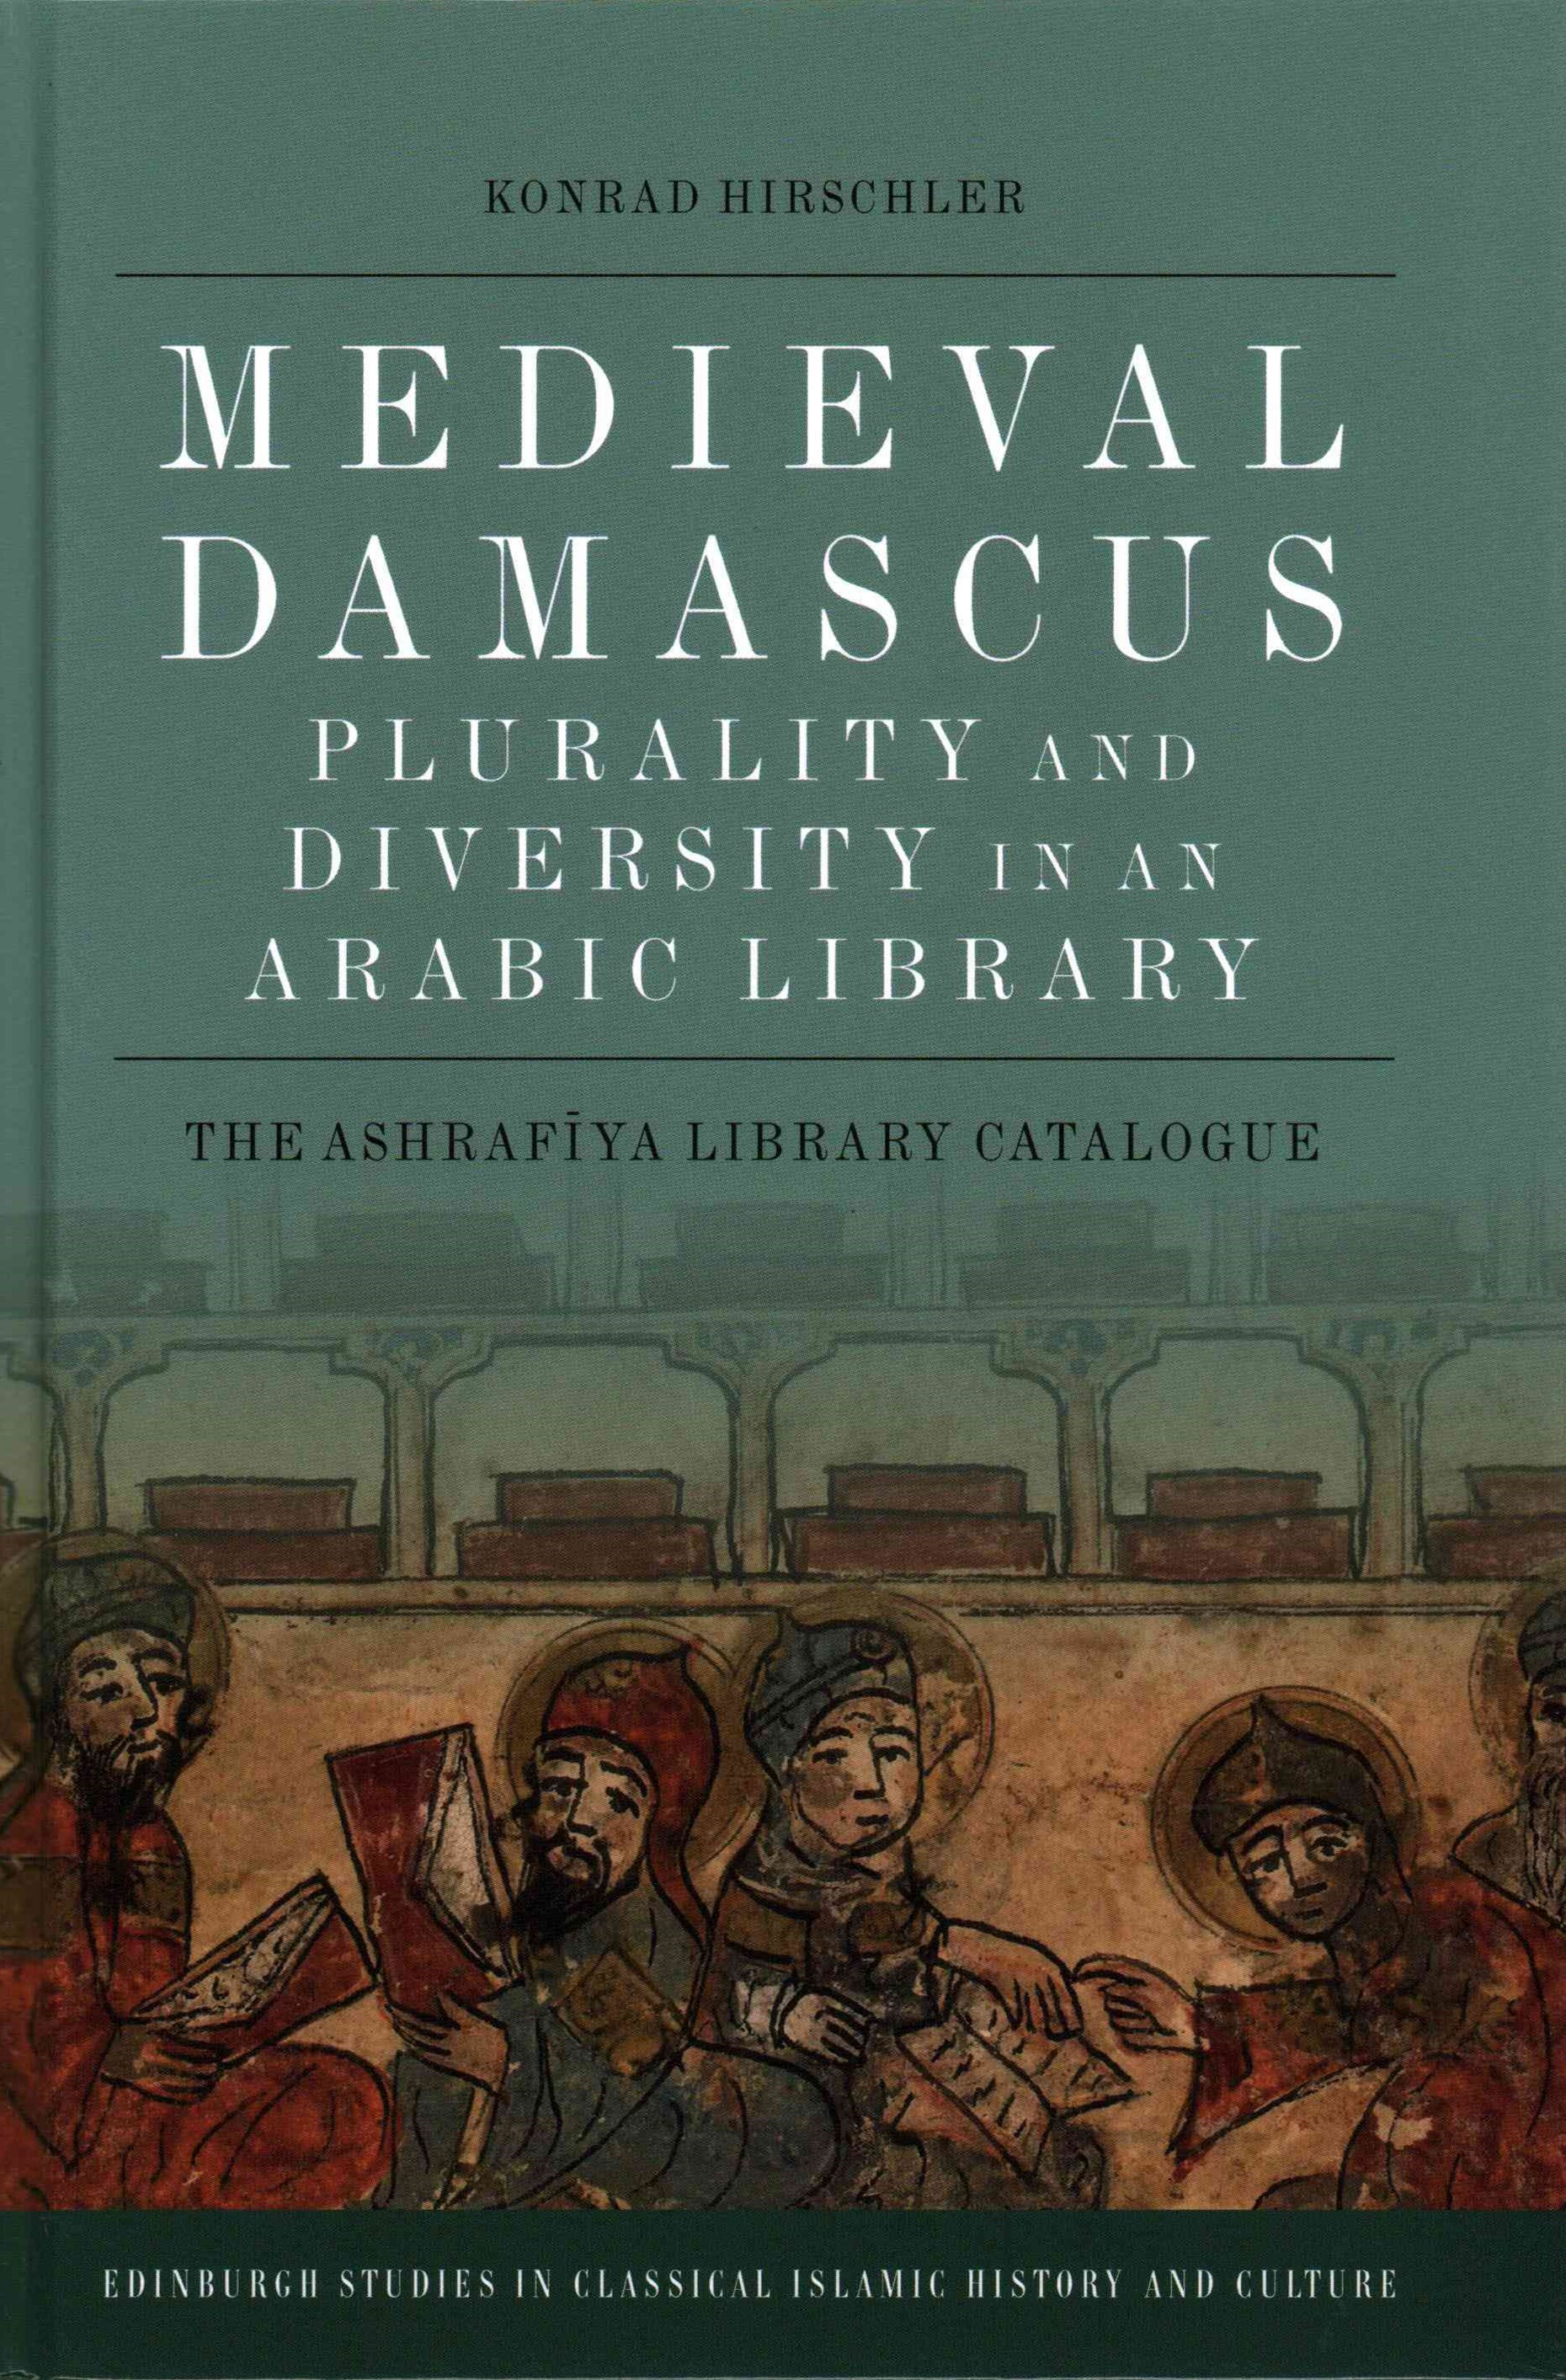 Medieval Damascus: Plurality and Diversity in an Arabic Library